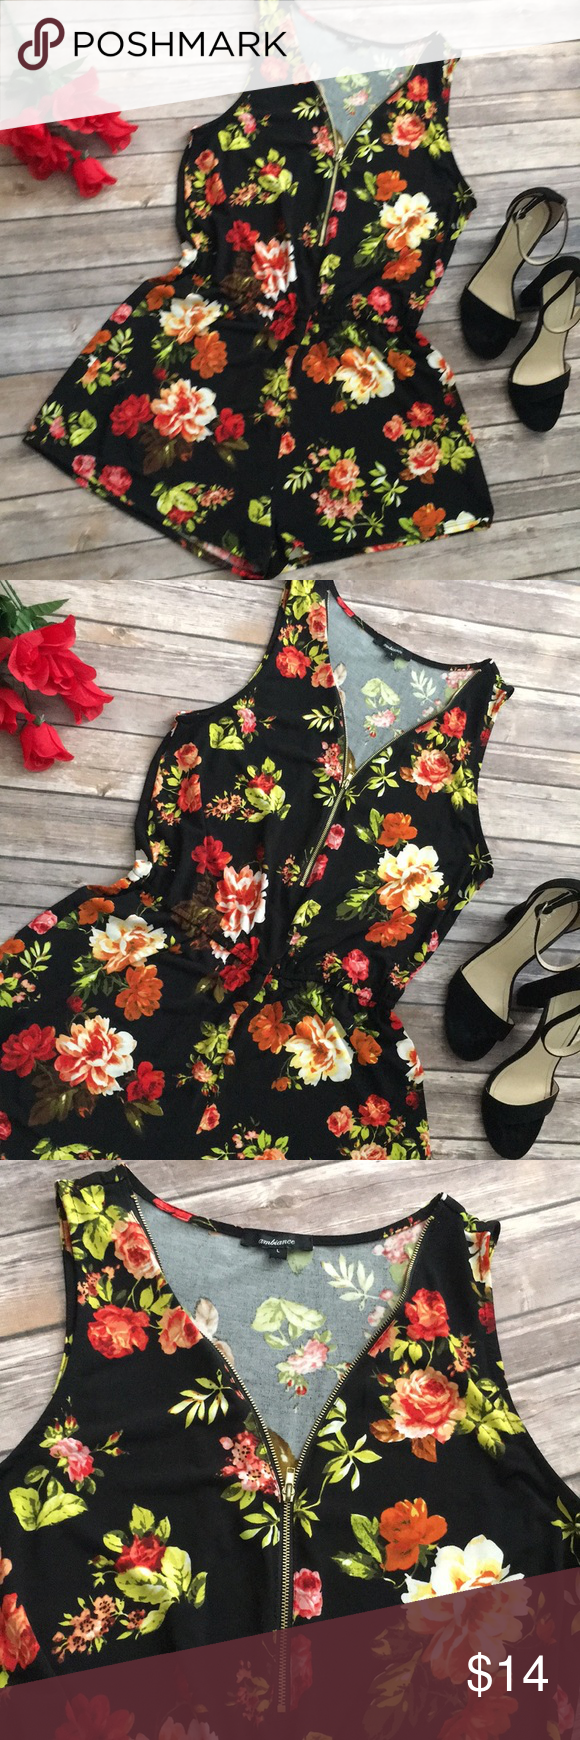 Floral romper Formal shorts romper. Perfect for spring time. Zip up front. Very stretchy. 95% polyester 5% spandex. Shorts